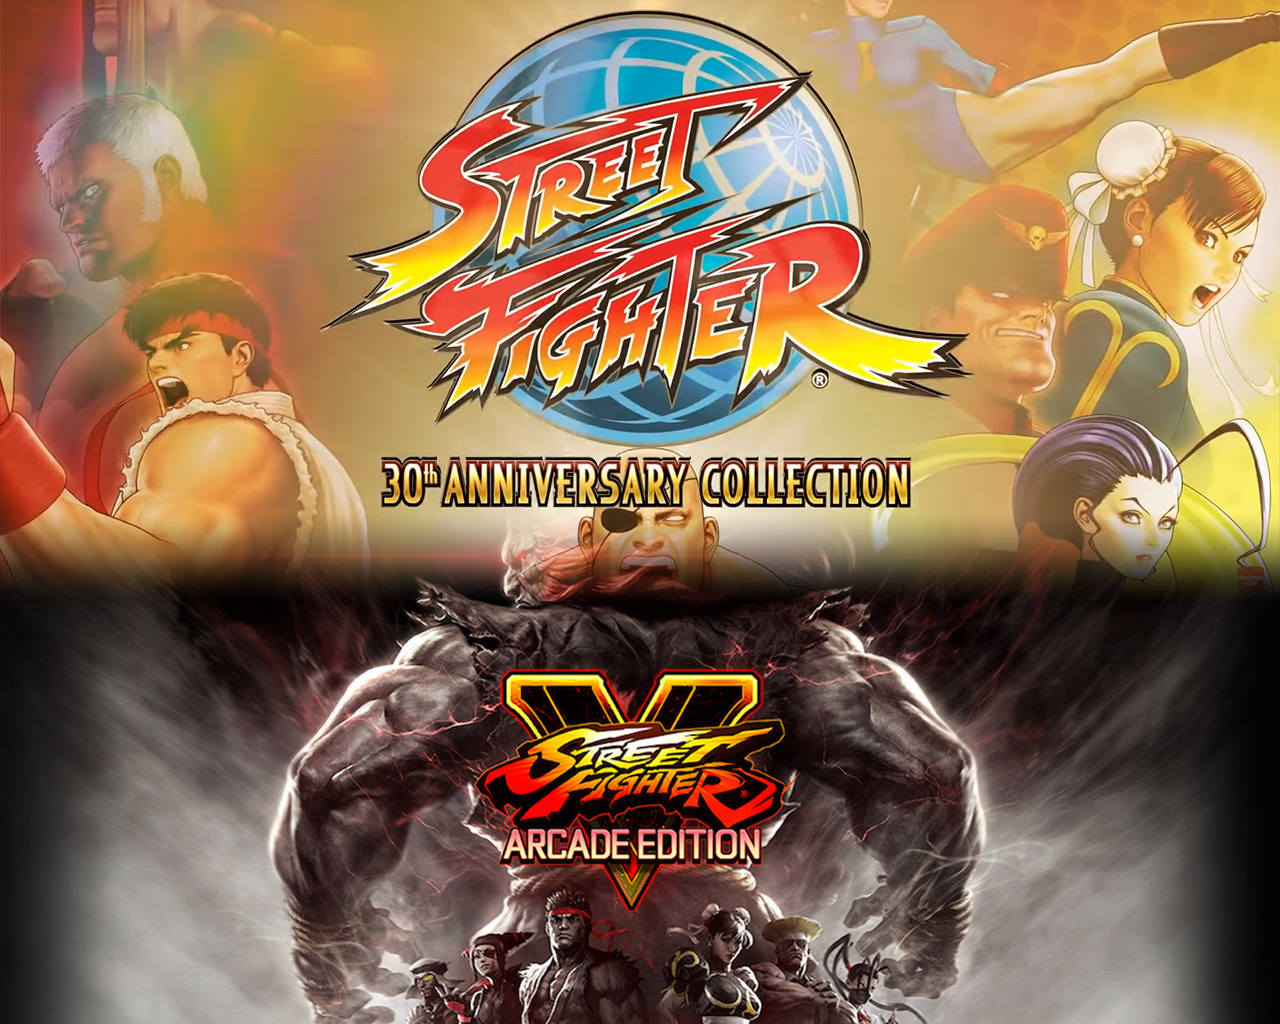 Street Fighter - SFV Arcade Edition et 30 Anniversary Collection